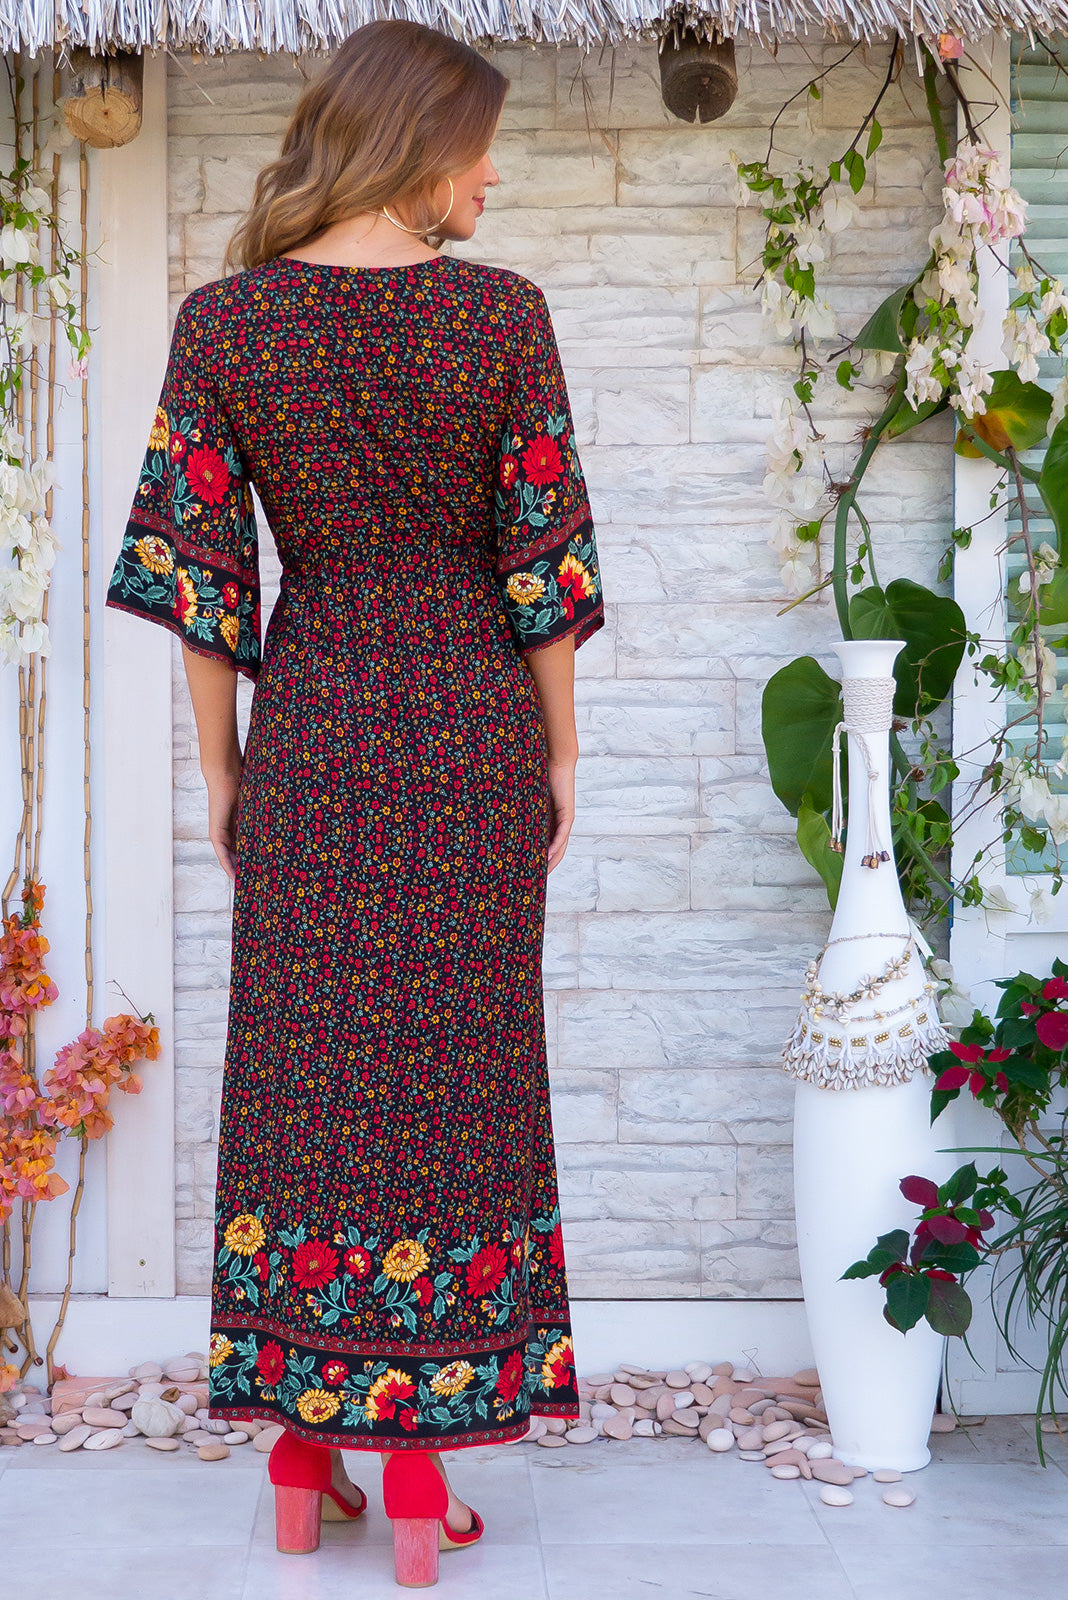 Annabella Folklore Black Caftan Maxi Dress bohemian inspired floral print summer dress with plunging neckline, side pockets and a border print.